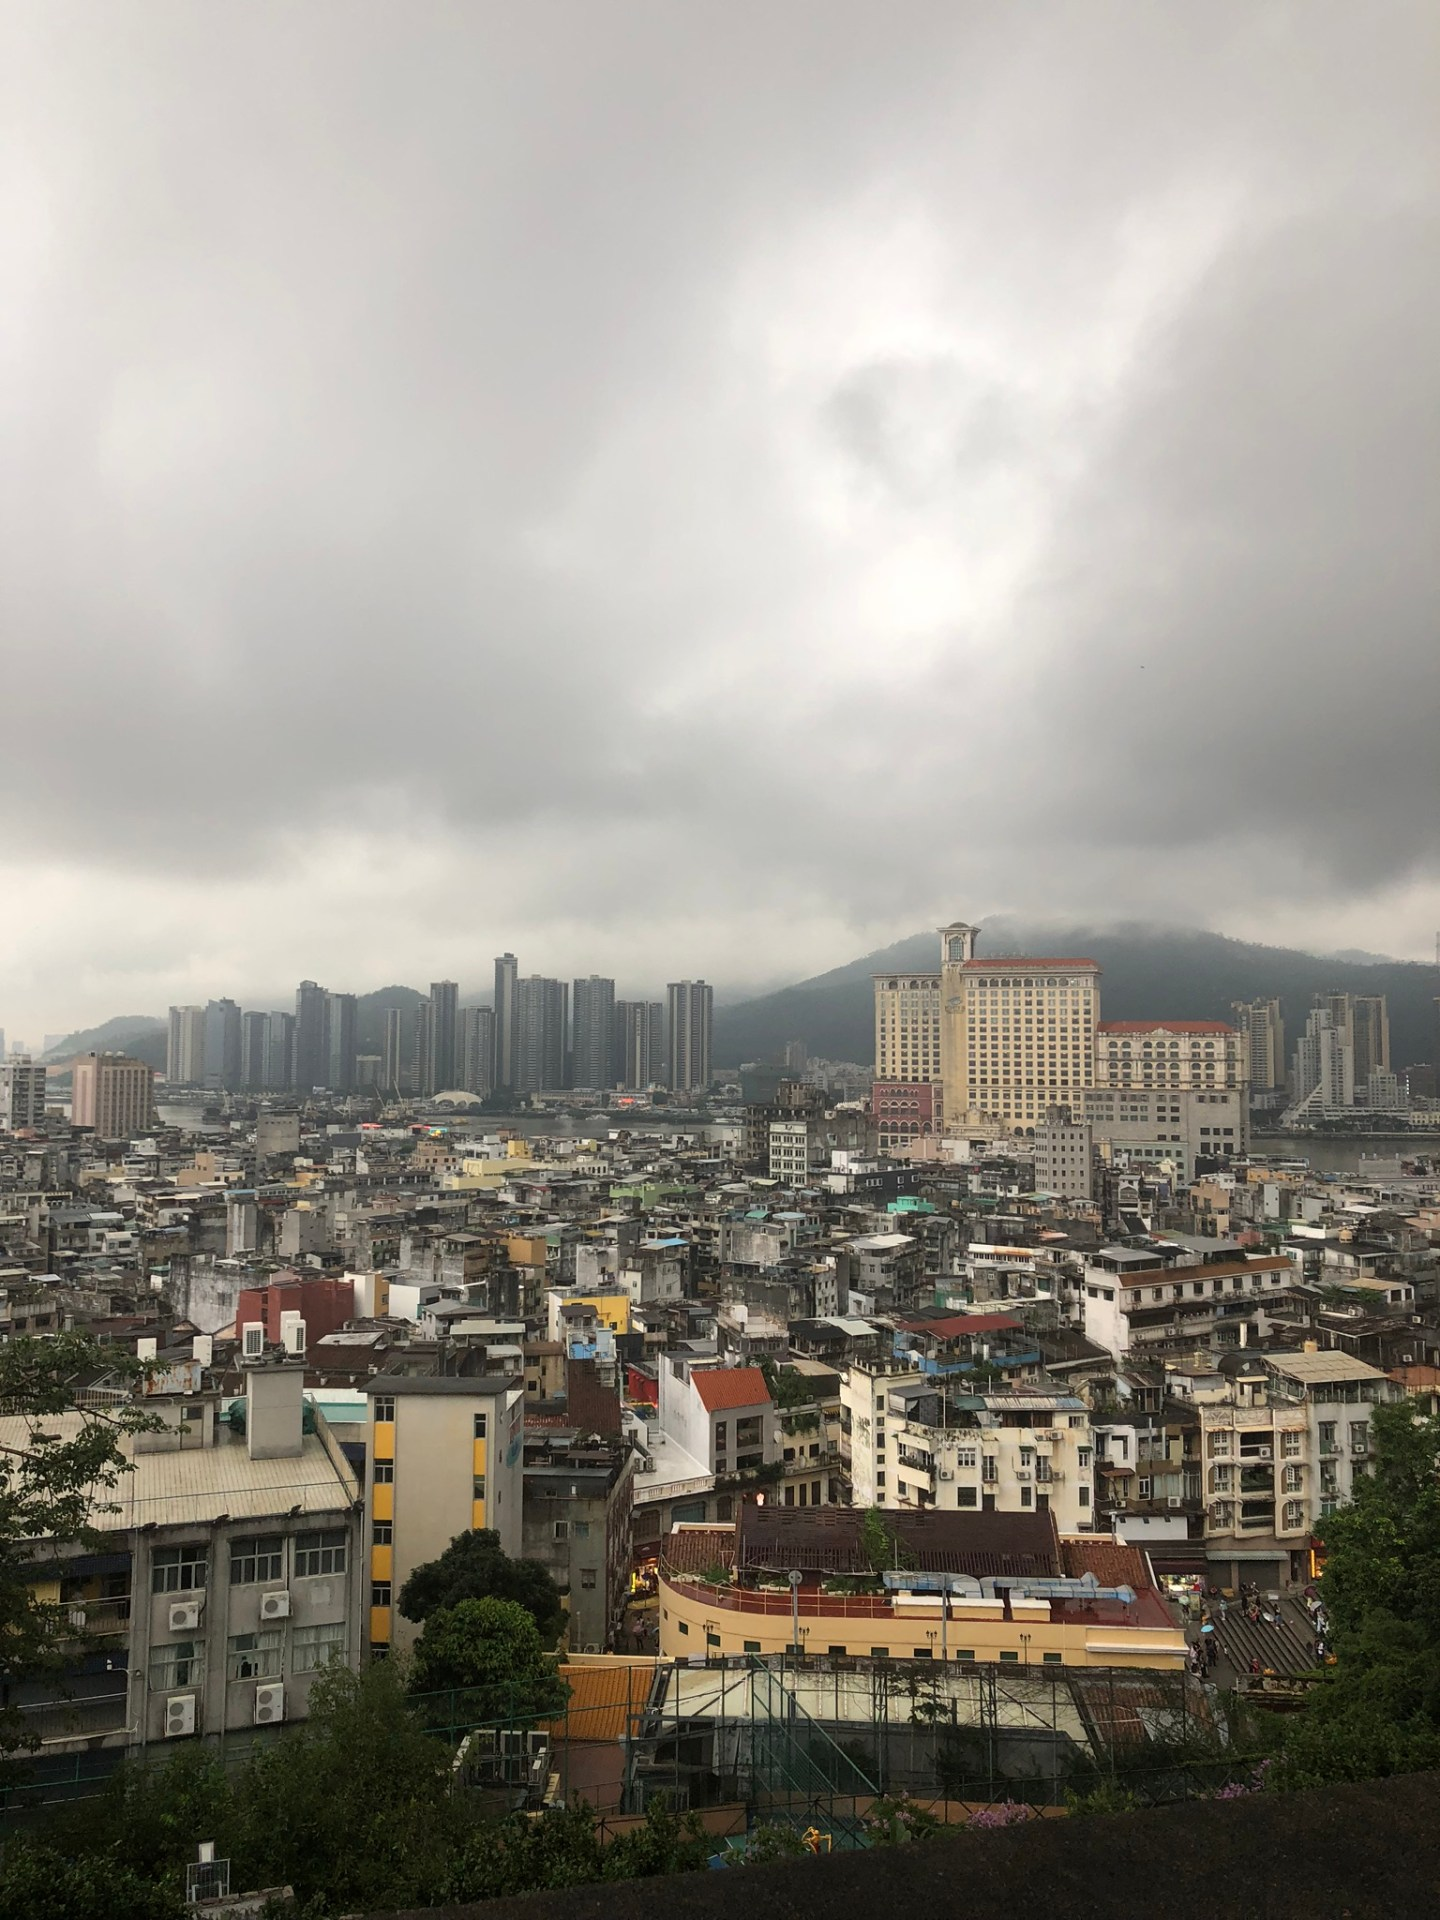 Views across Macau